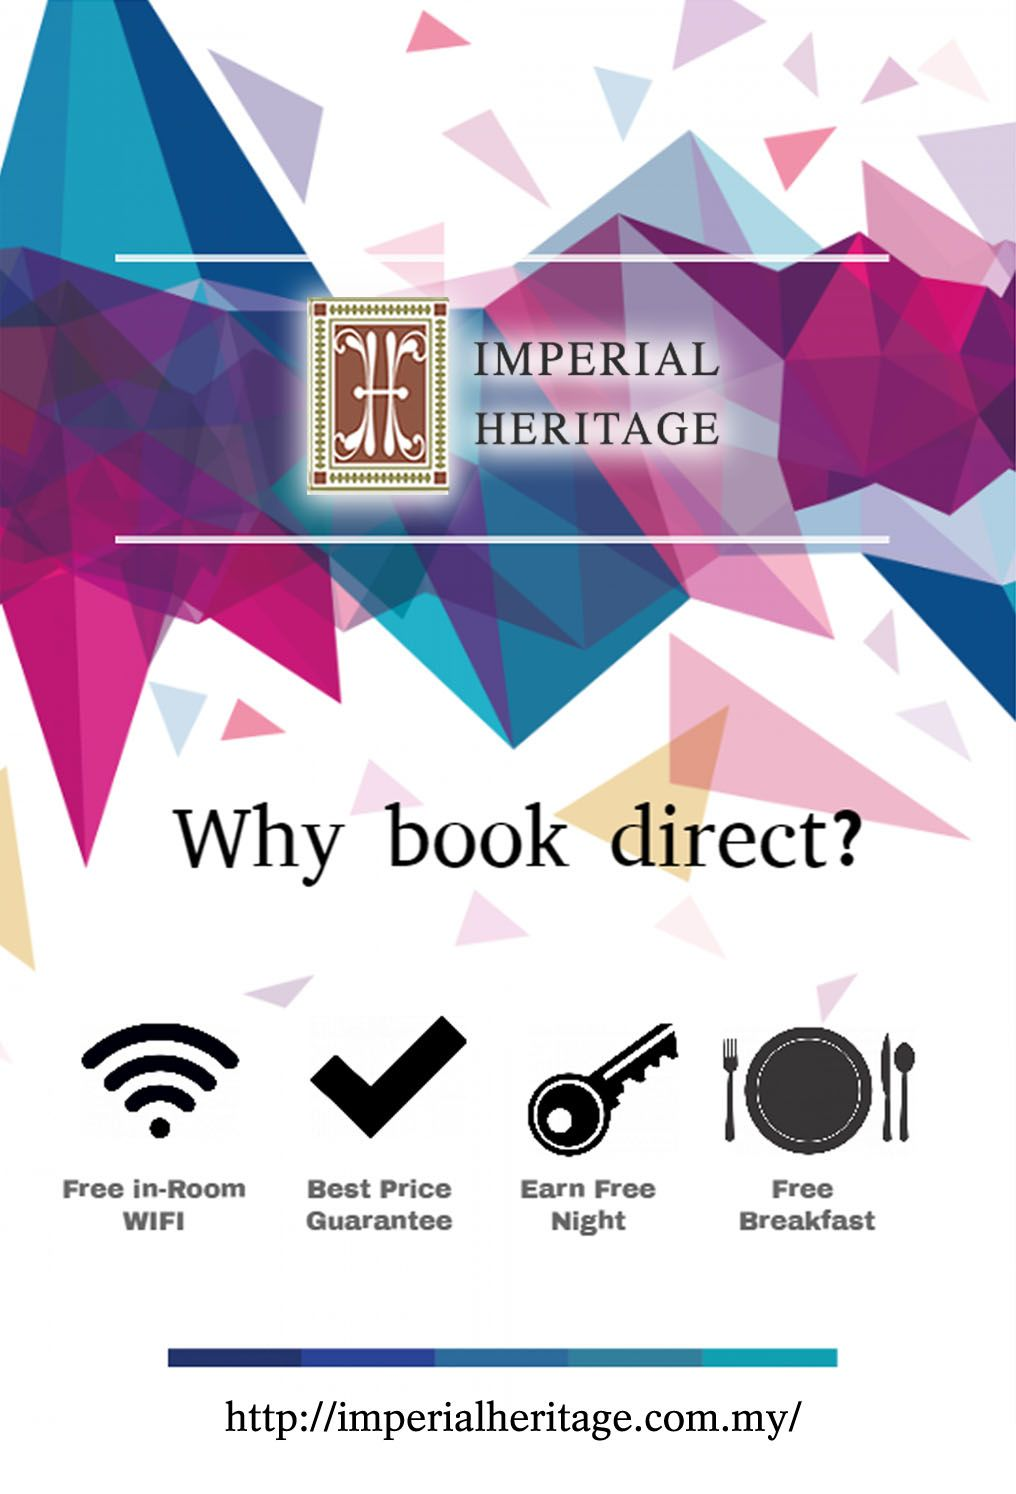 Book Direct And Get Your Special Privilege Book Hotel Imperialheritage Hotel Melaka Jonkerstreet Malaysia Holiday Heritage Hotel Heritage Imperial